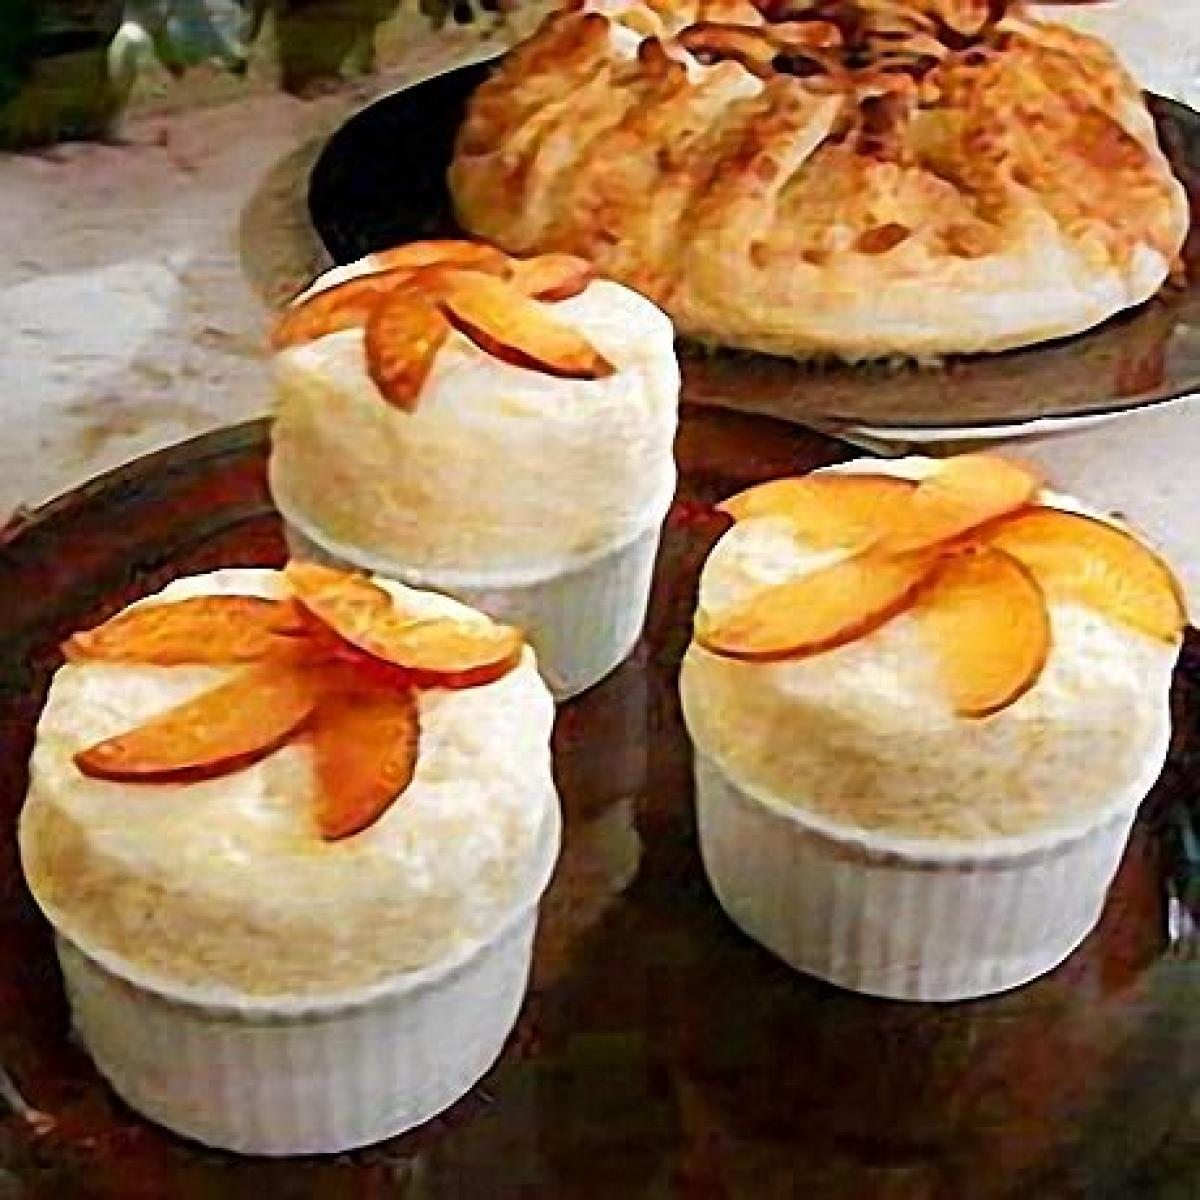 A picture of Delia's Iced Apple Soufflé with Caramelised Apple recipe